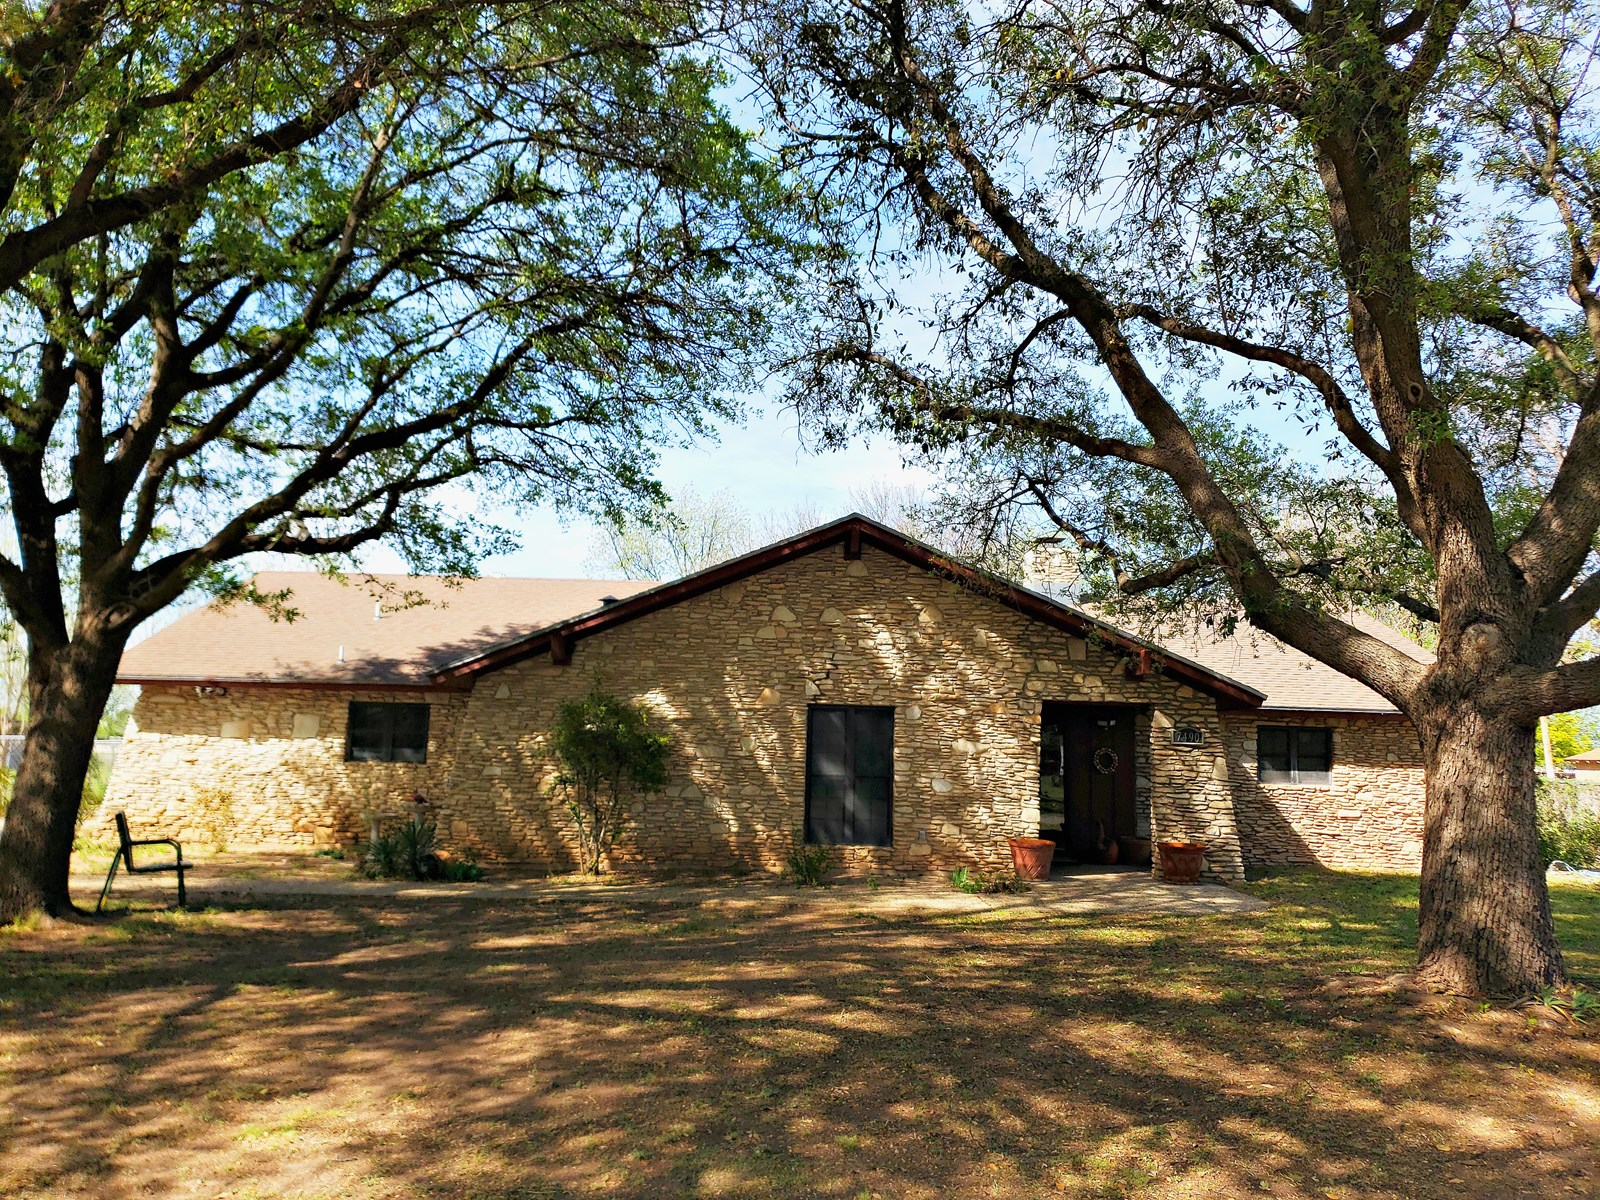 3Bed/2Bth Rock Home In Grape Creek, Texas